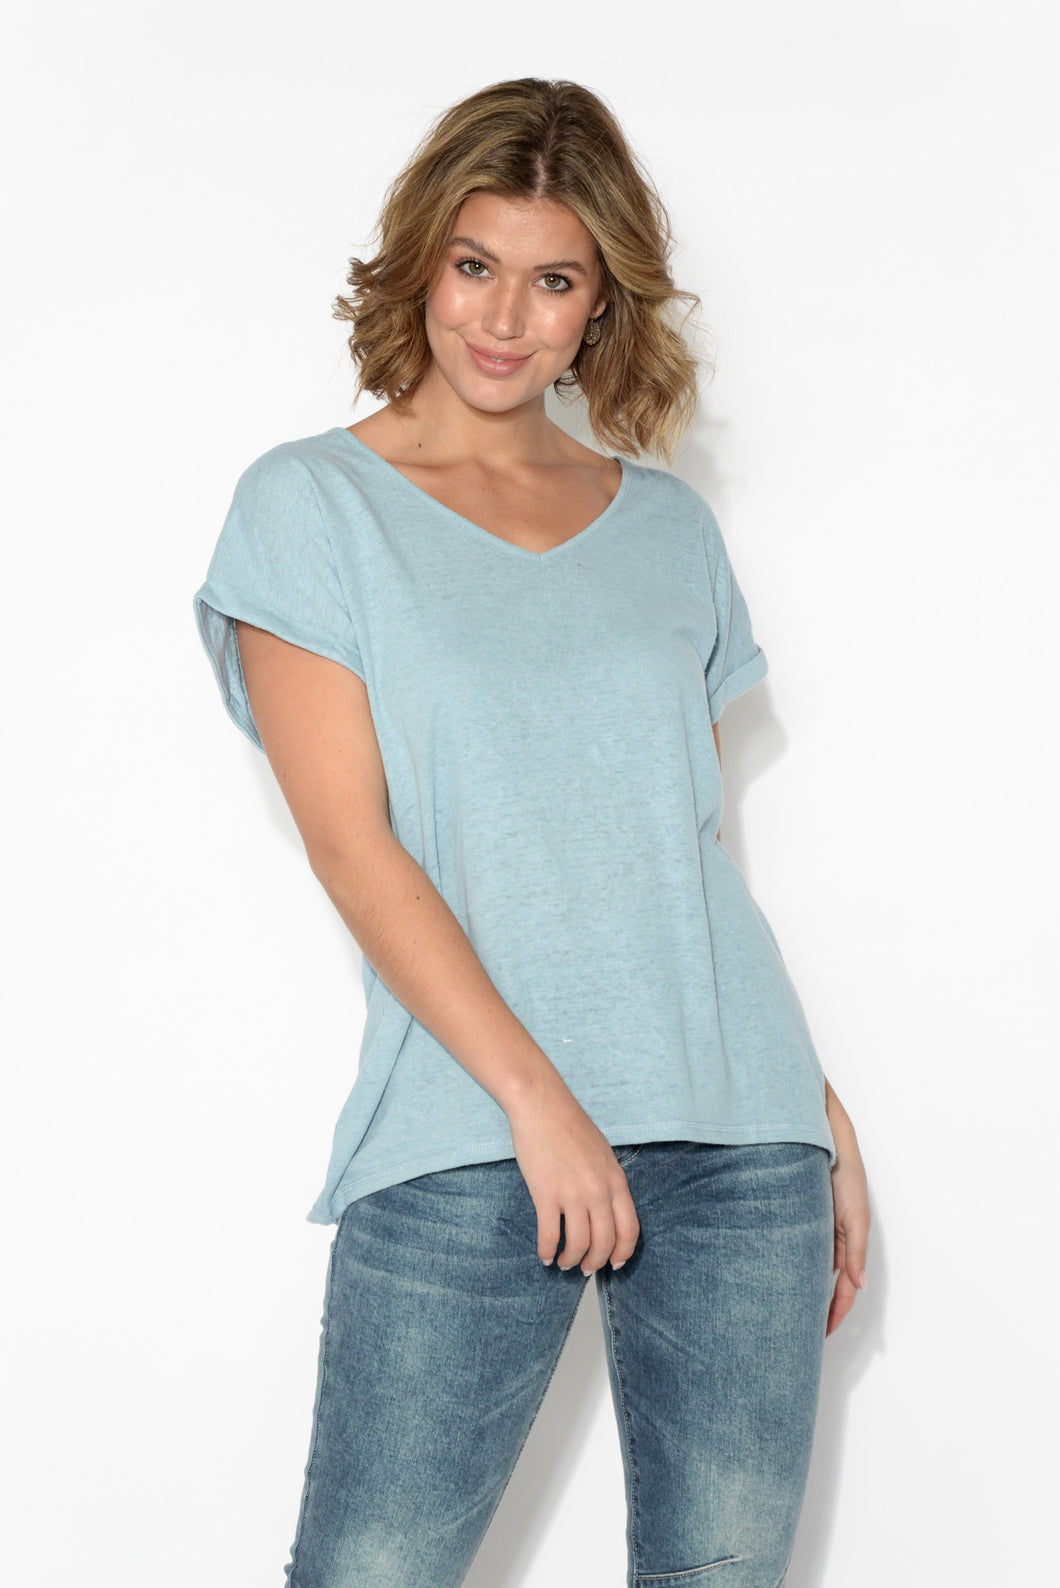 Lynette Blue Linen Cotton Tee